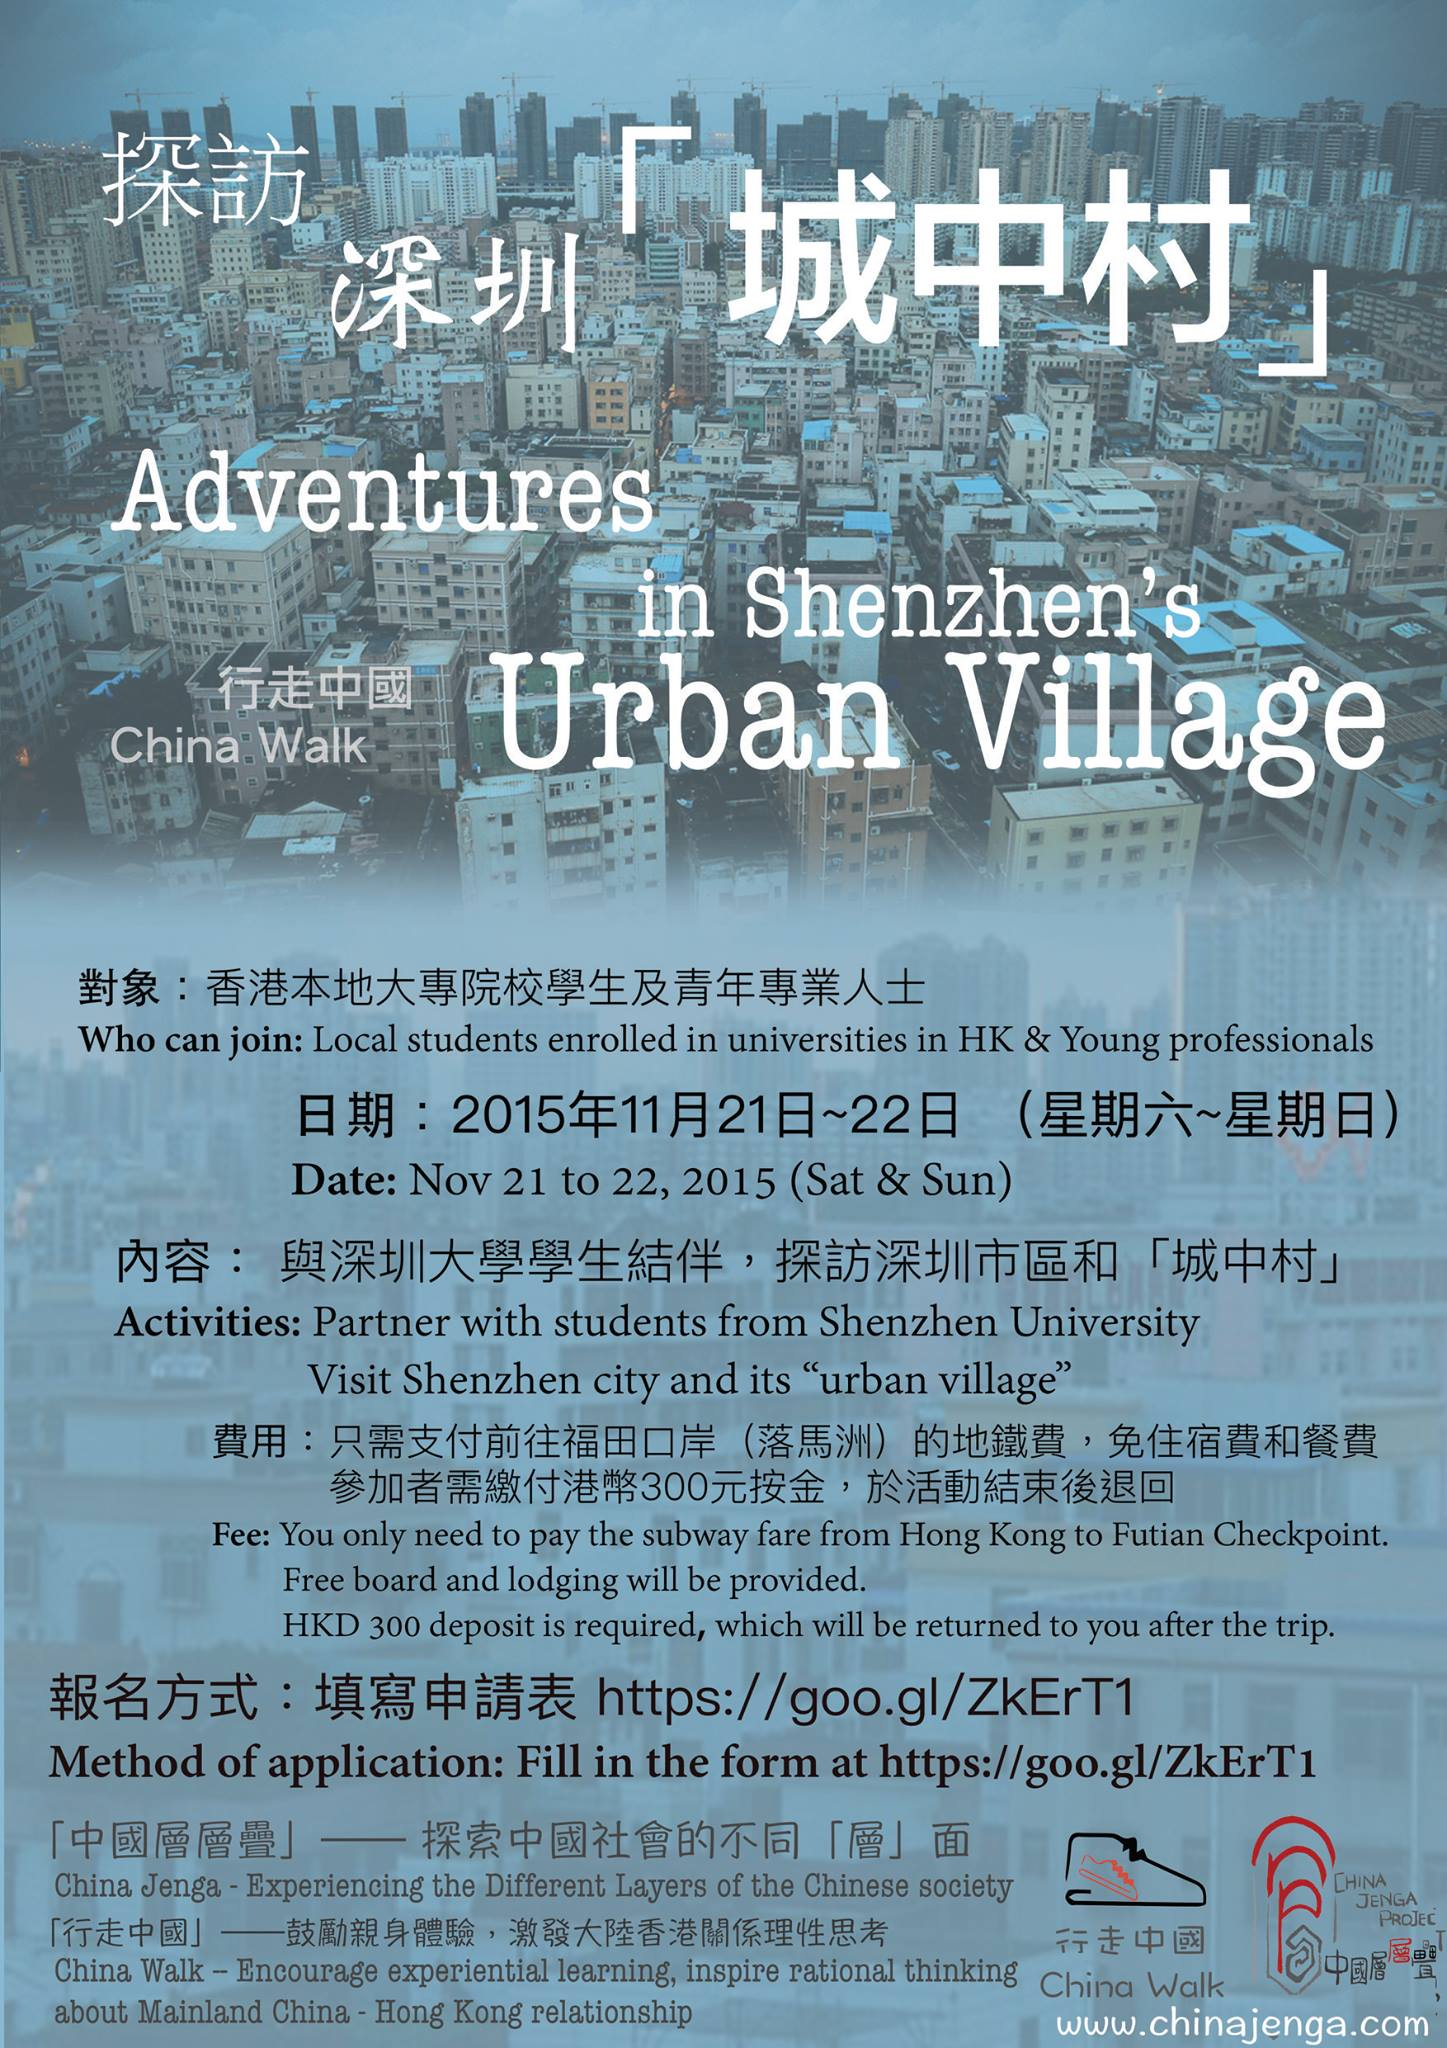 read Free trip for HKU students who are interested in understanding and exploring urban villages in Shenzhen